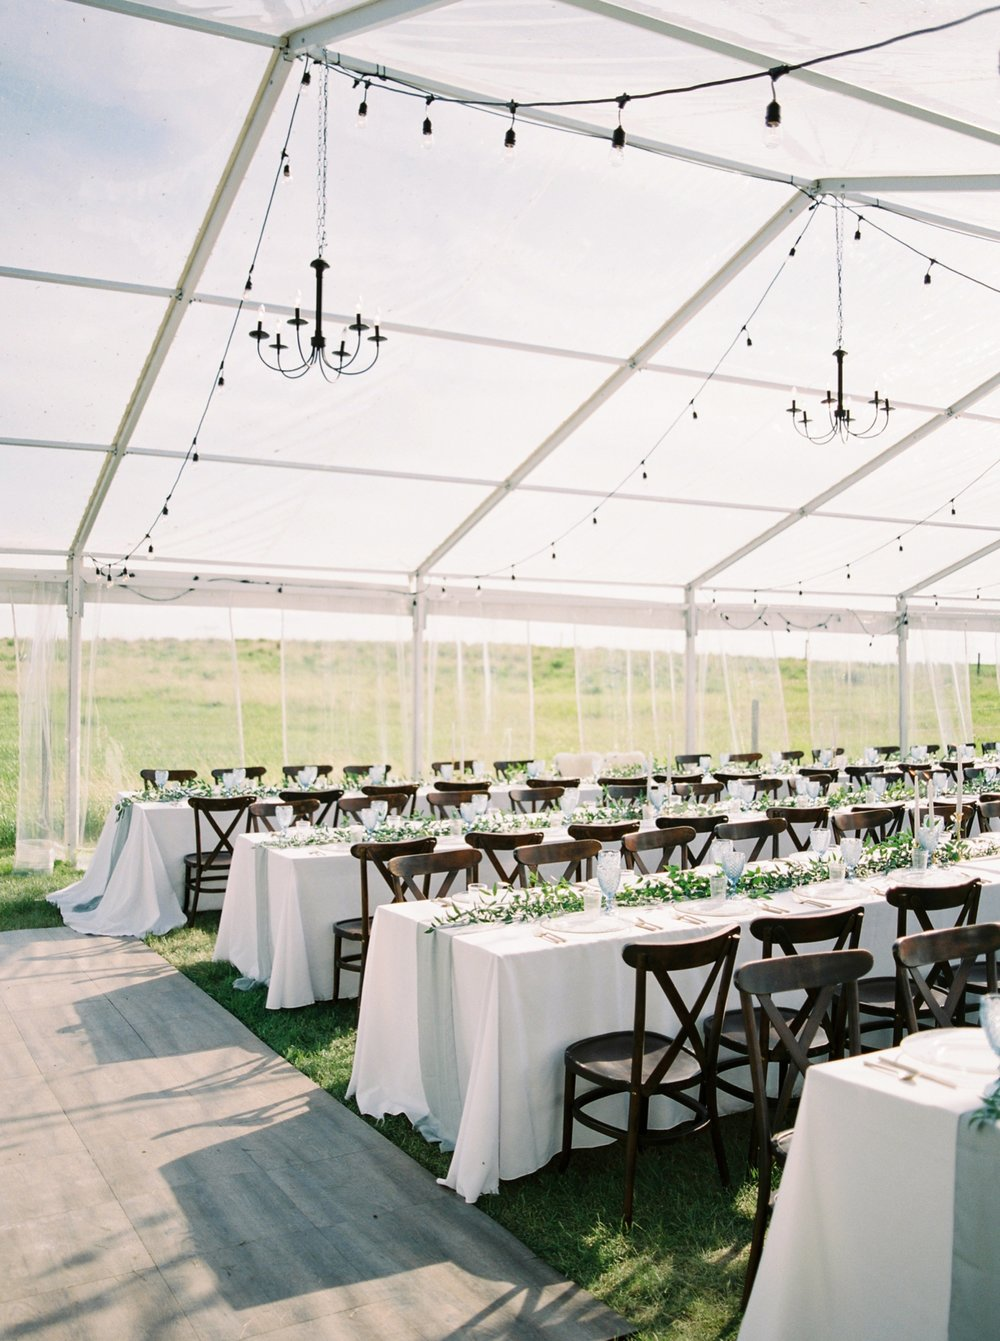 Calgary wedding photographers | The Gathered Farm Wedding | Justine milton fine art film photographer | clear tent wedding reception decor